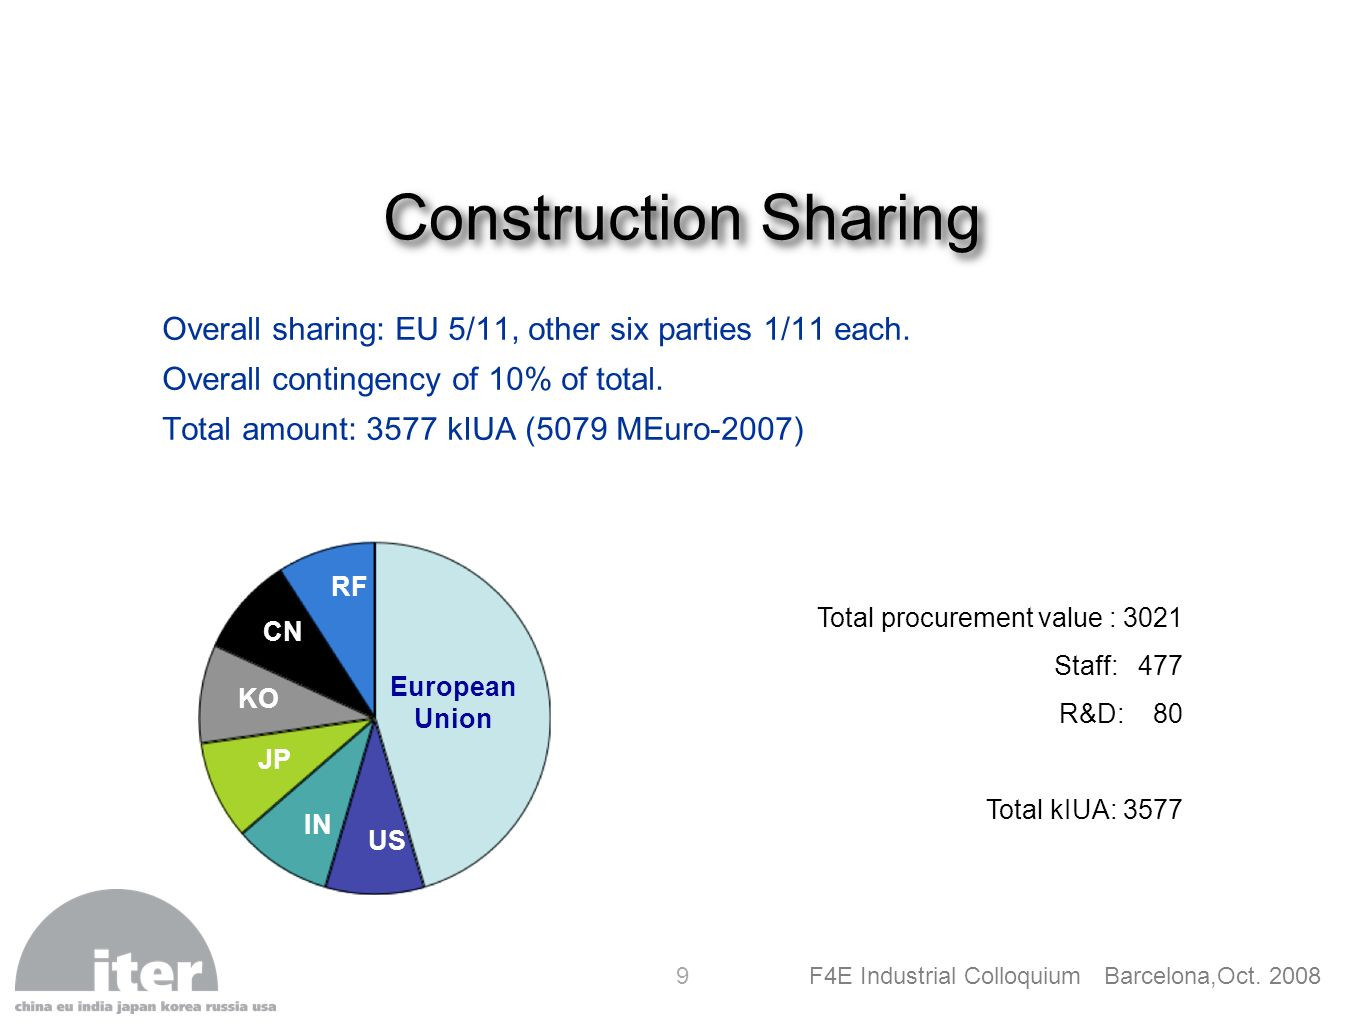 Construction Sharing Overall sharing: EU 5/11, other six parties 1/11 each. Overall contingency of 10% of total.